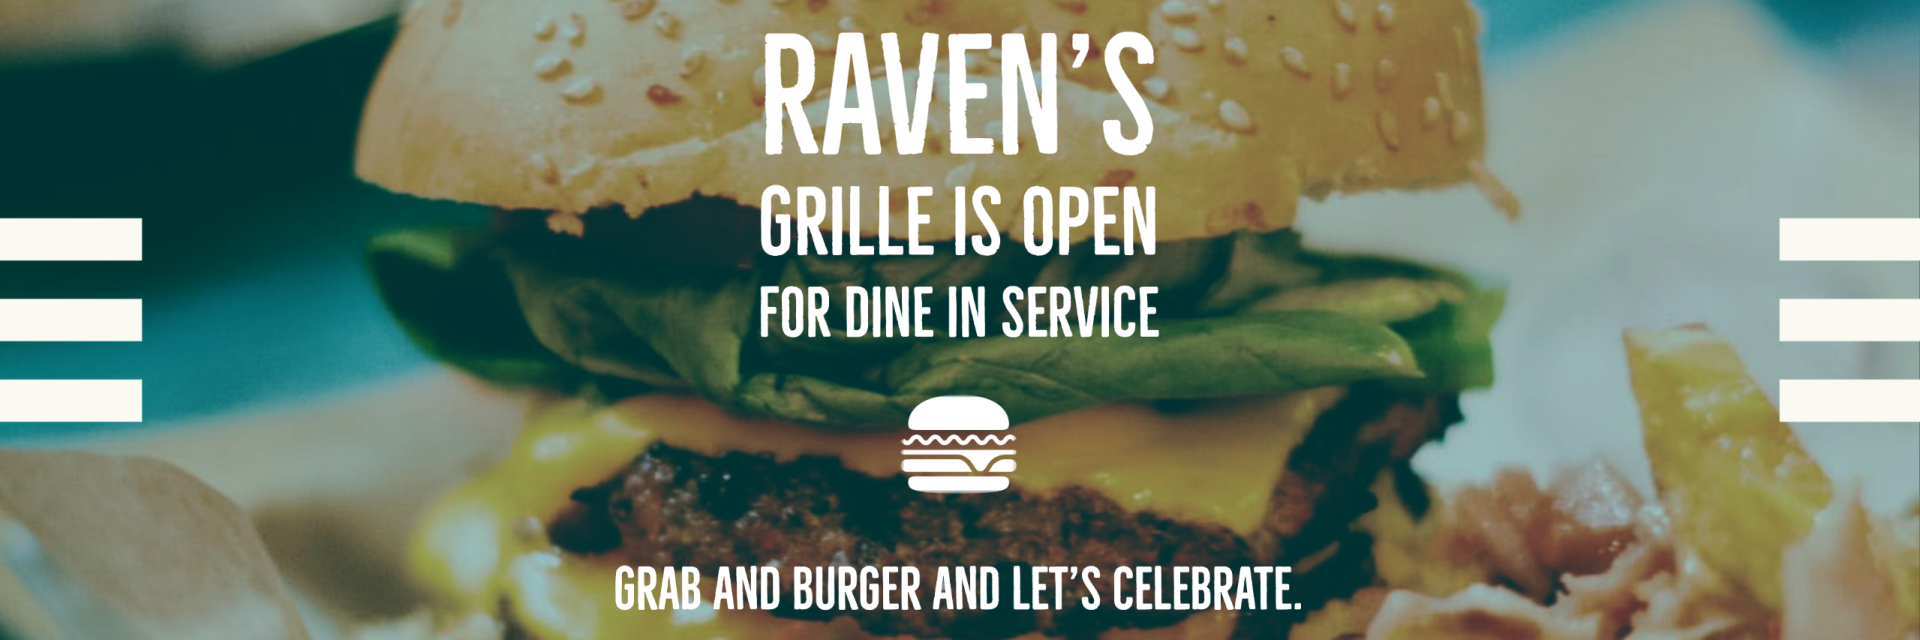 Raven's Grille Open Banner